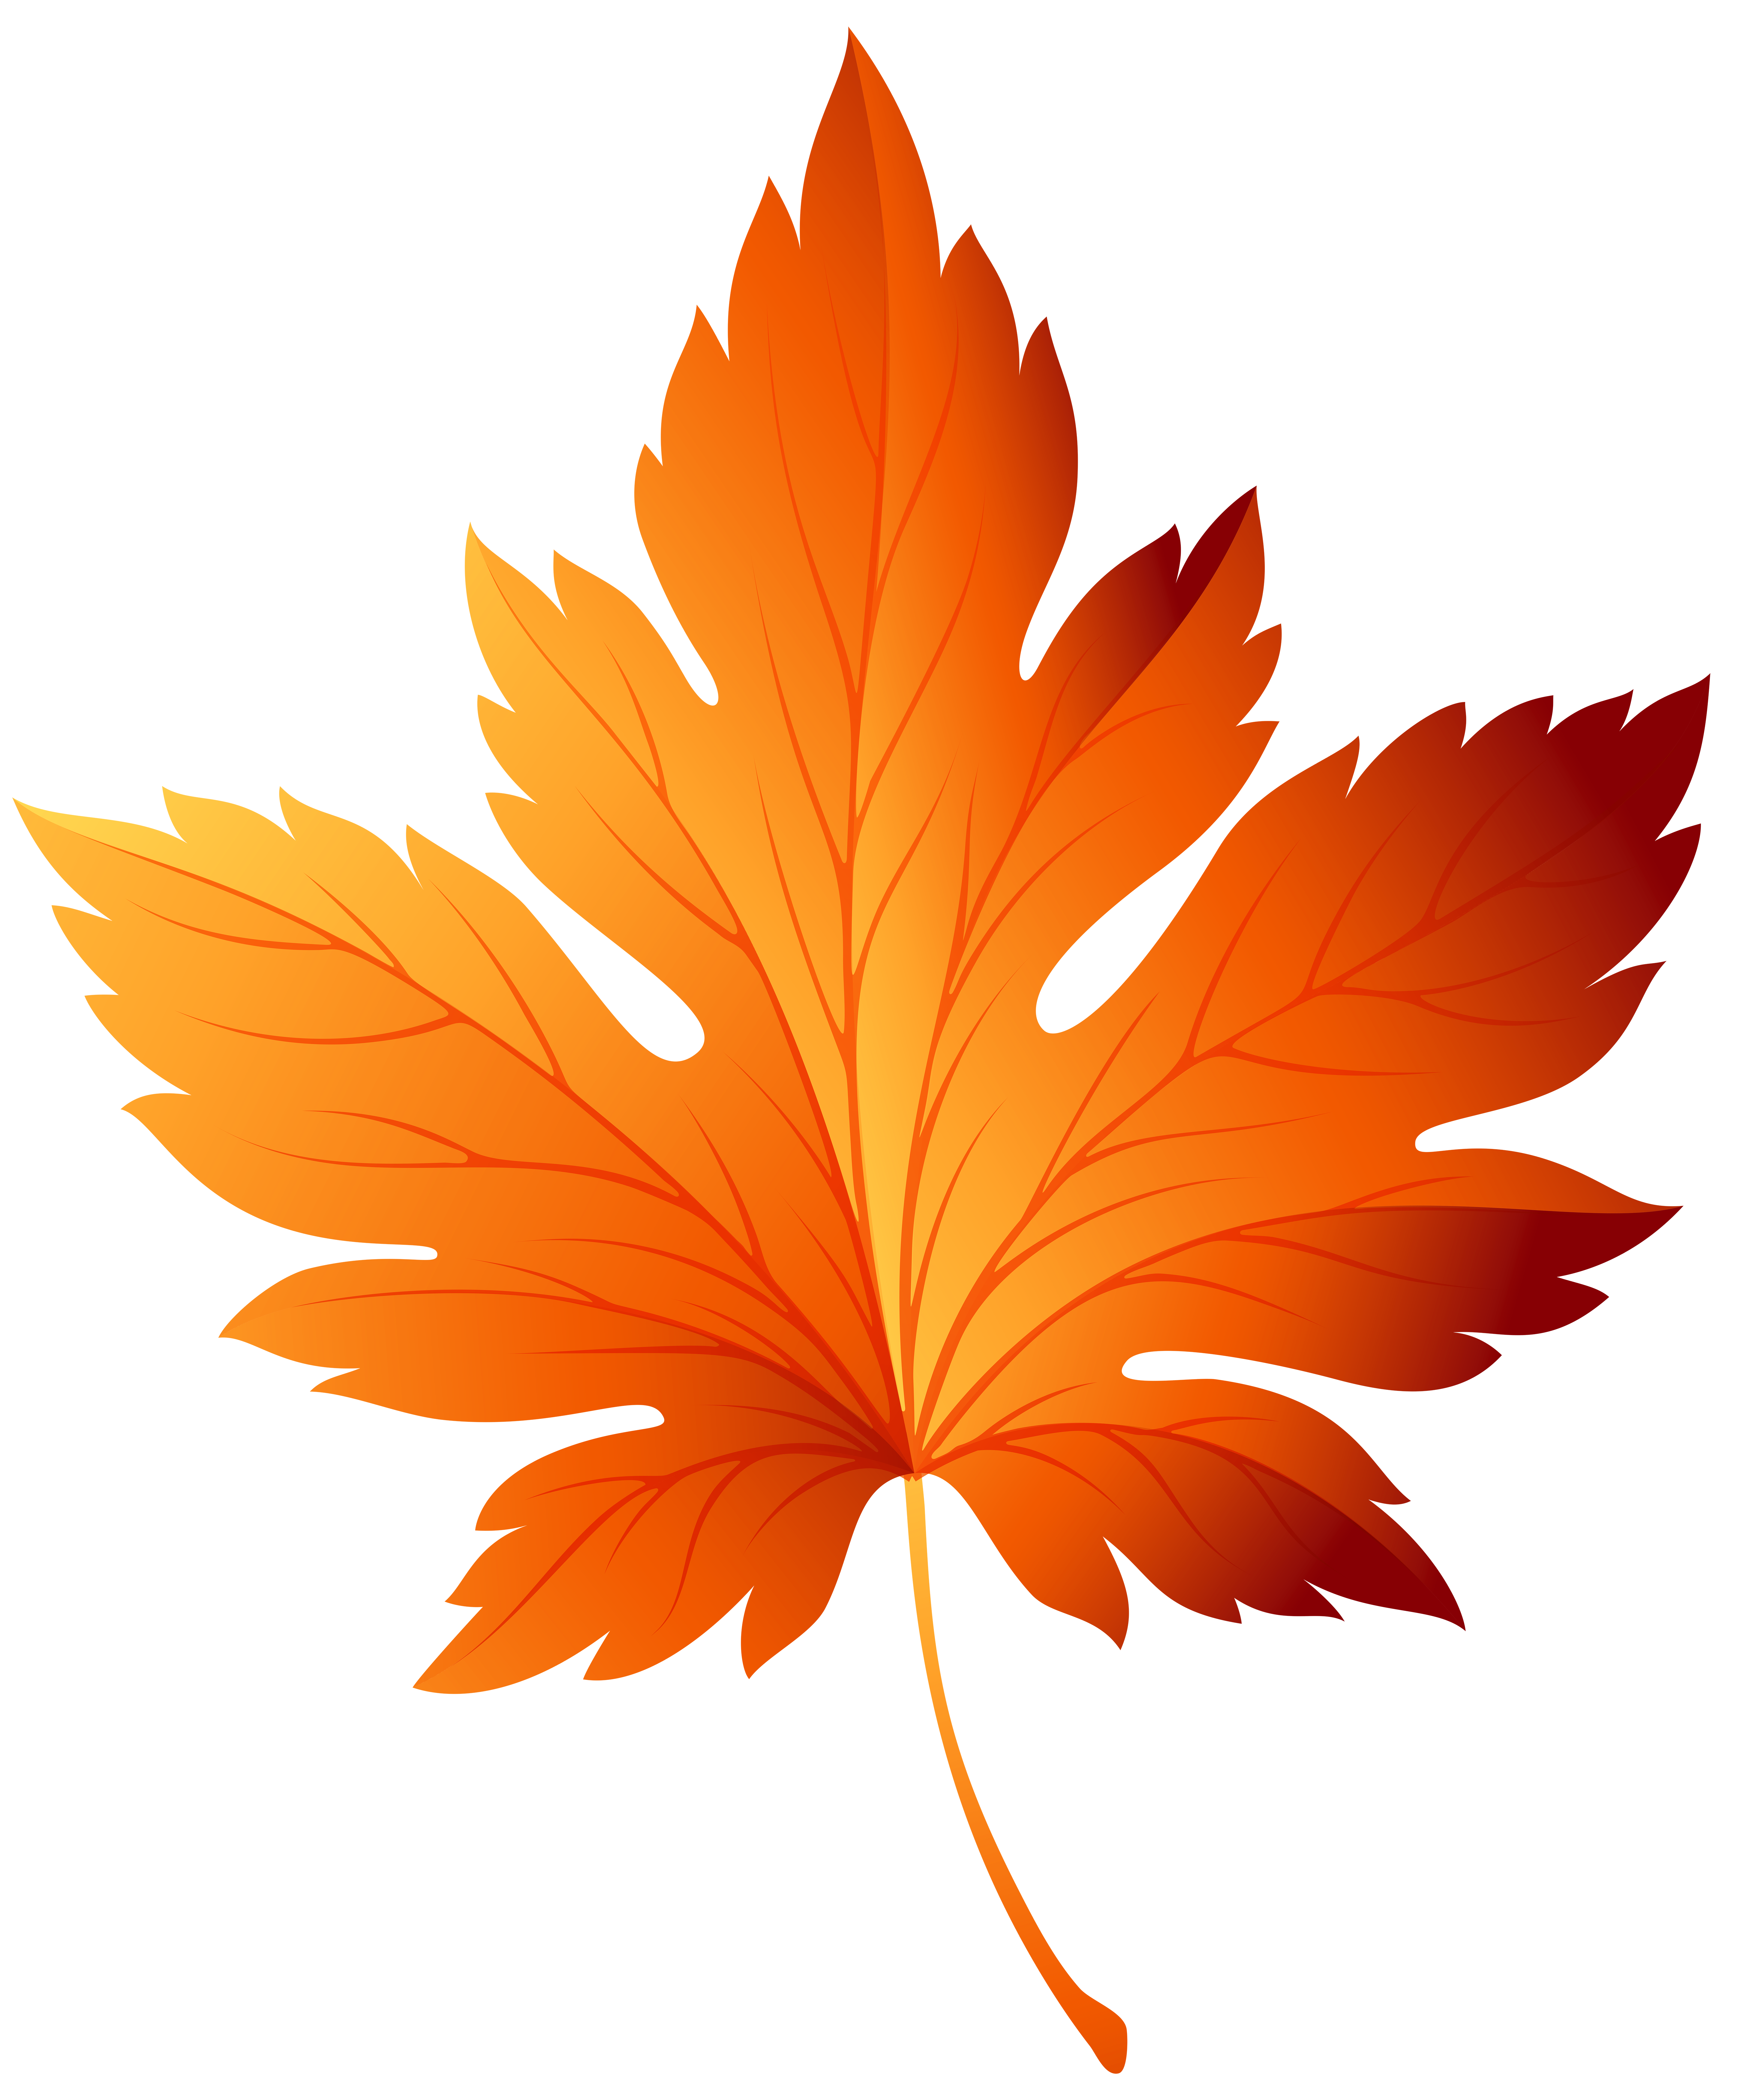 Autumn Leaf Transparent Picture Free Download in 2019.